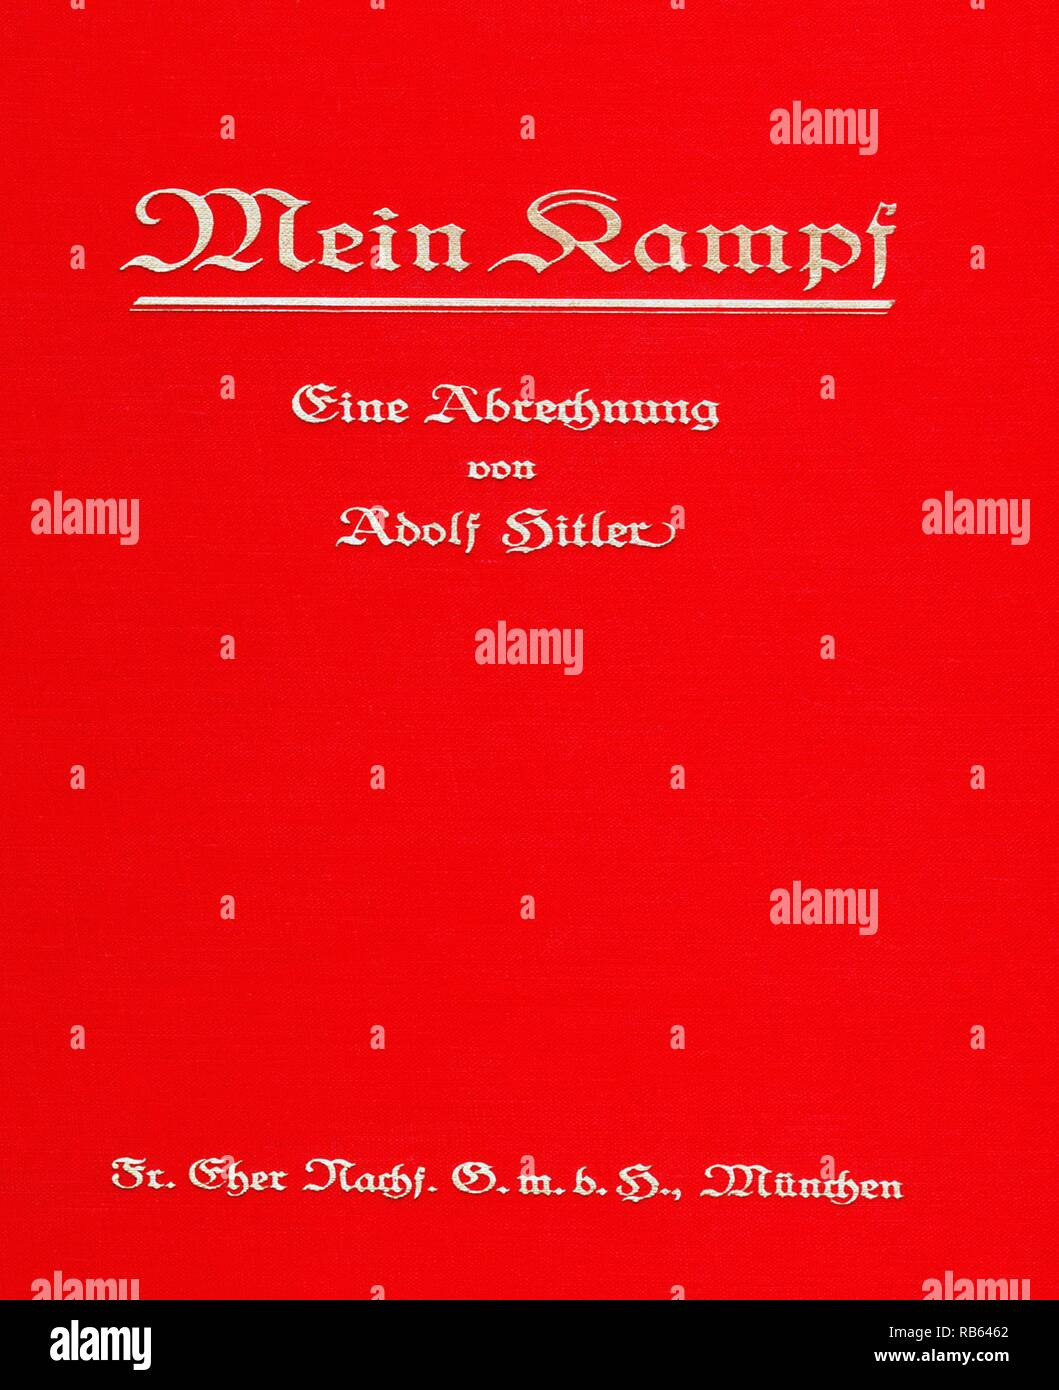 Mein Kampf, 'My Struggle' autobiographical manifesto by Nazi leader Adolf Hitler, Volume 1 of Mein Kampf was published in 1925 and Volume 2 in 1926 - Stock Image